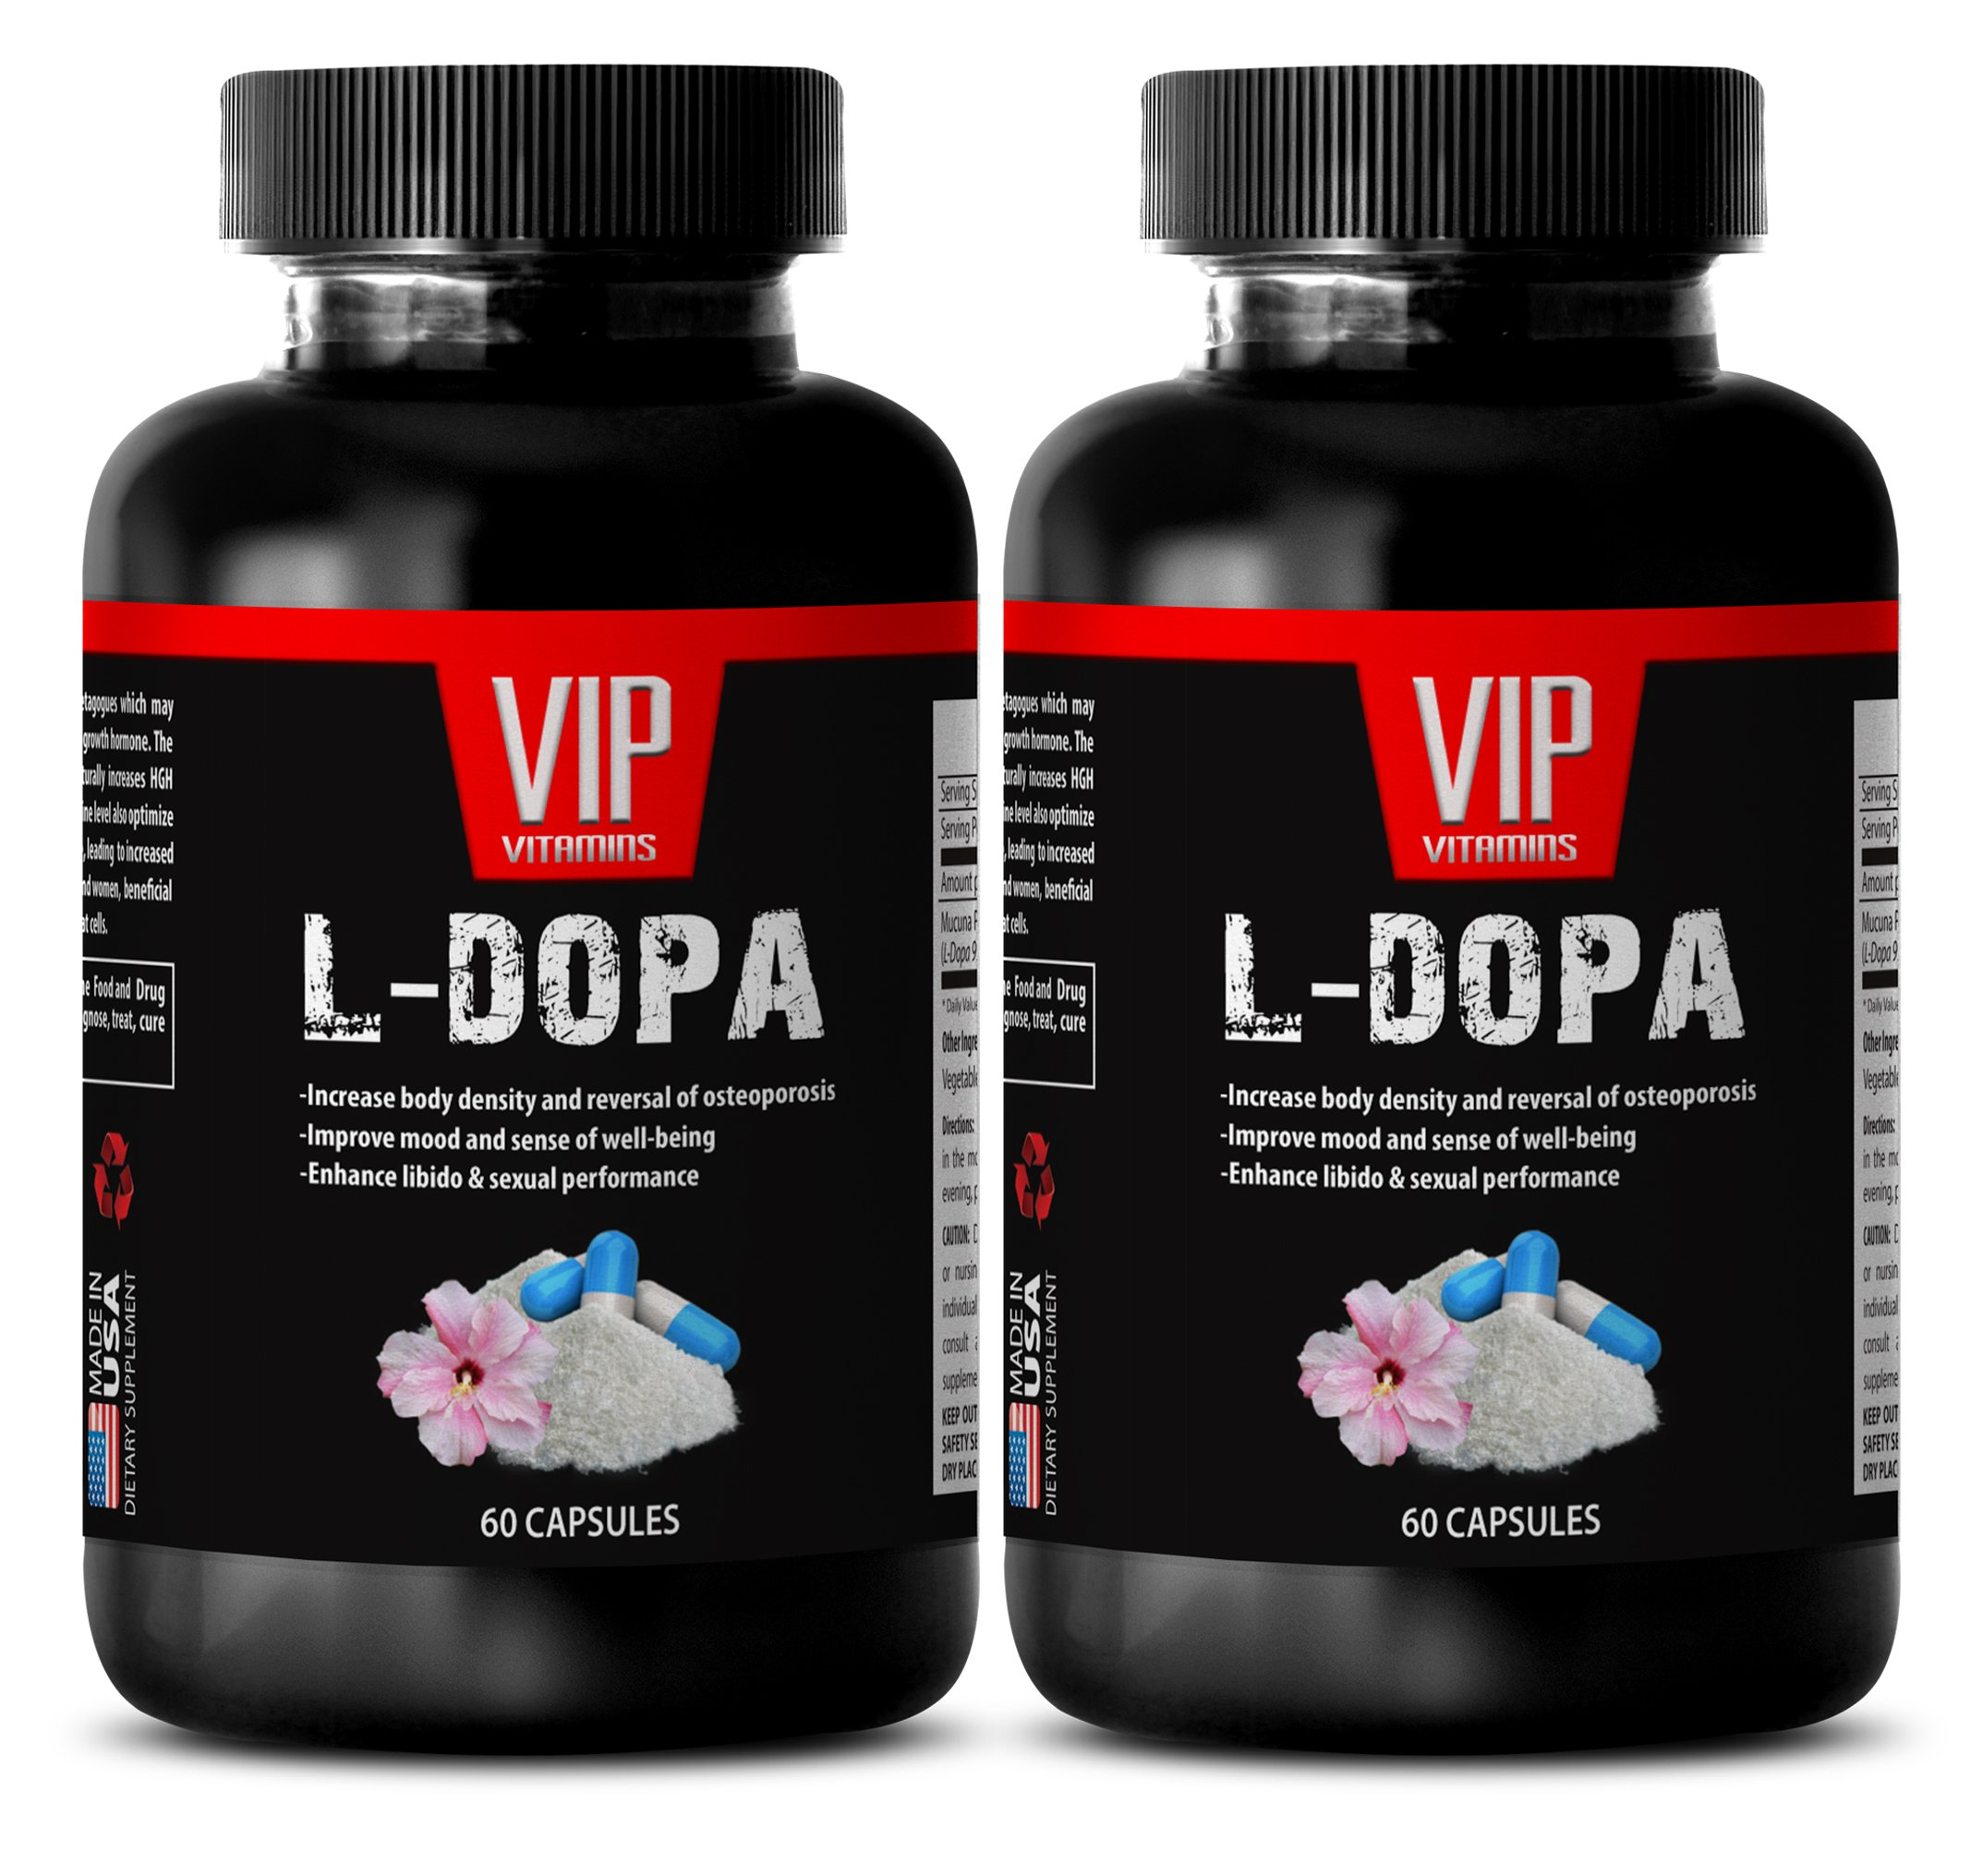 female sex drive booster natural - L-DOPA 350 mg - ENHANCE LIBIDO AND SEXUAL PERFORMANCE - dopabean - 2 Bottles (120 Capsules) by VIP VITAMINS (Image #1)